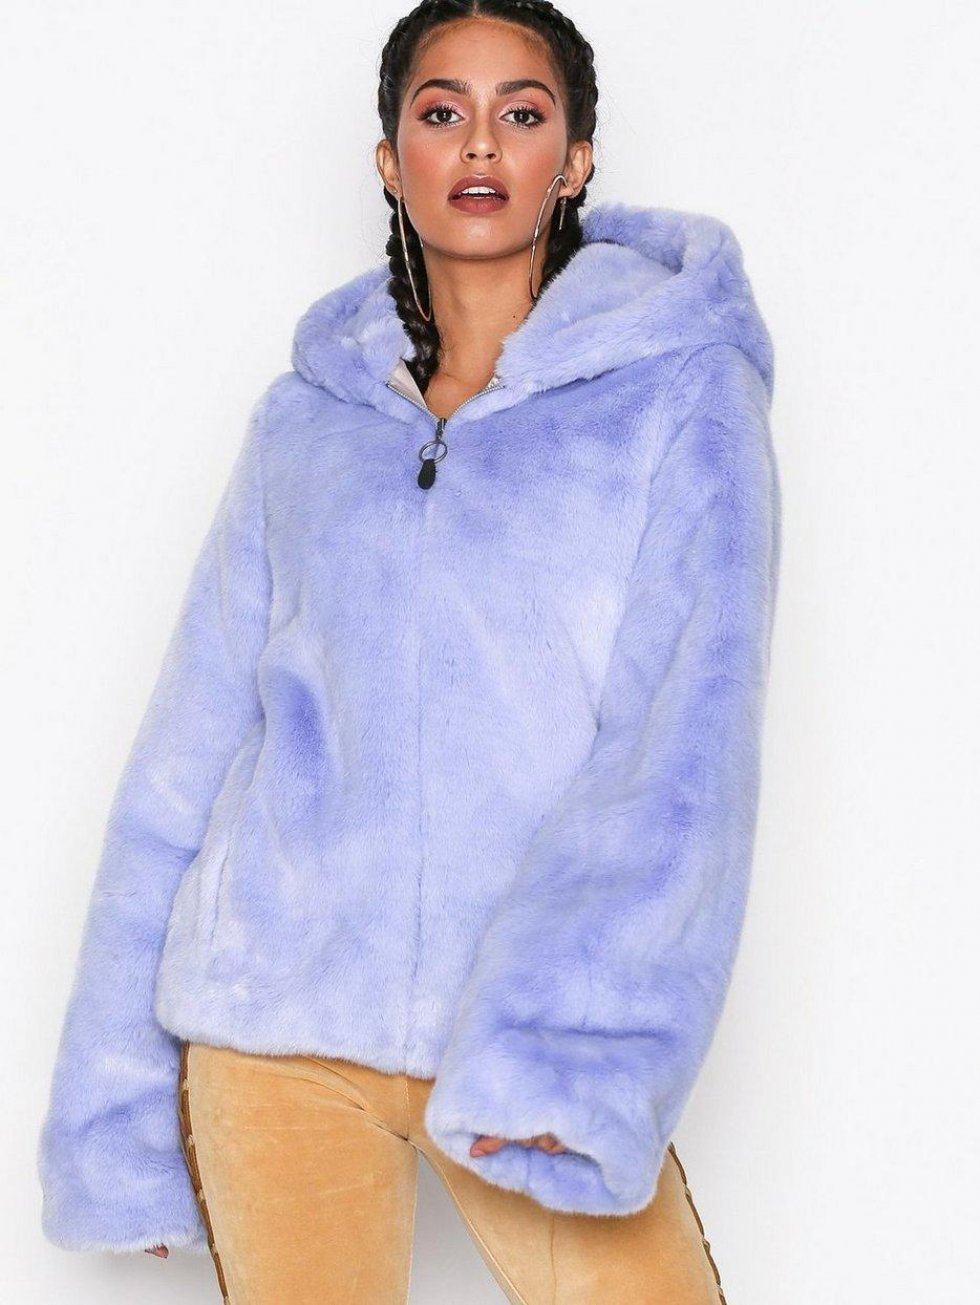 Faux Fur for the win!